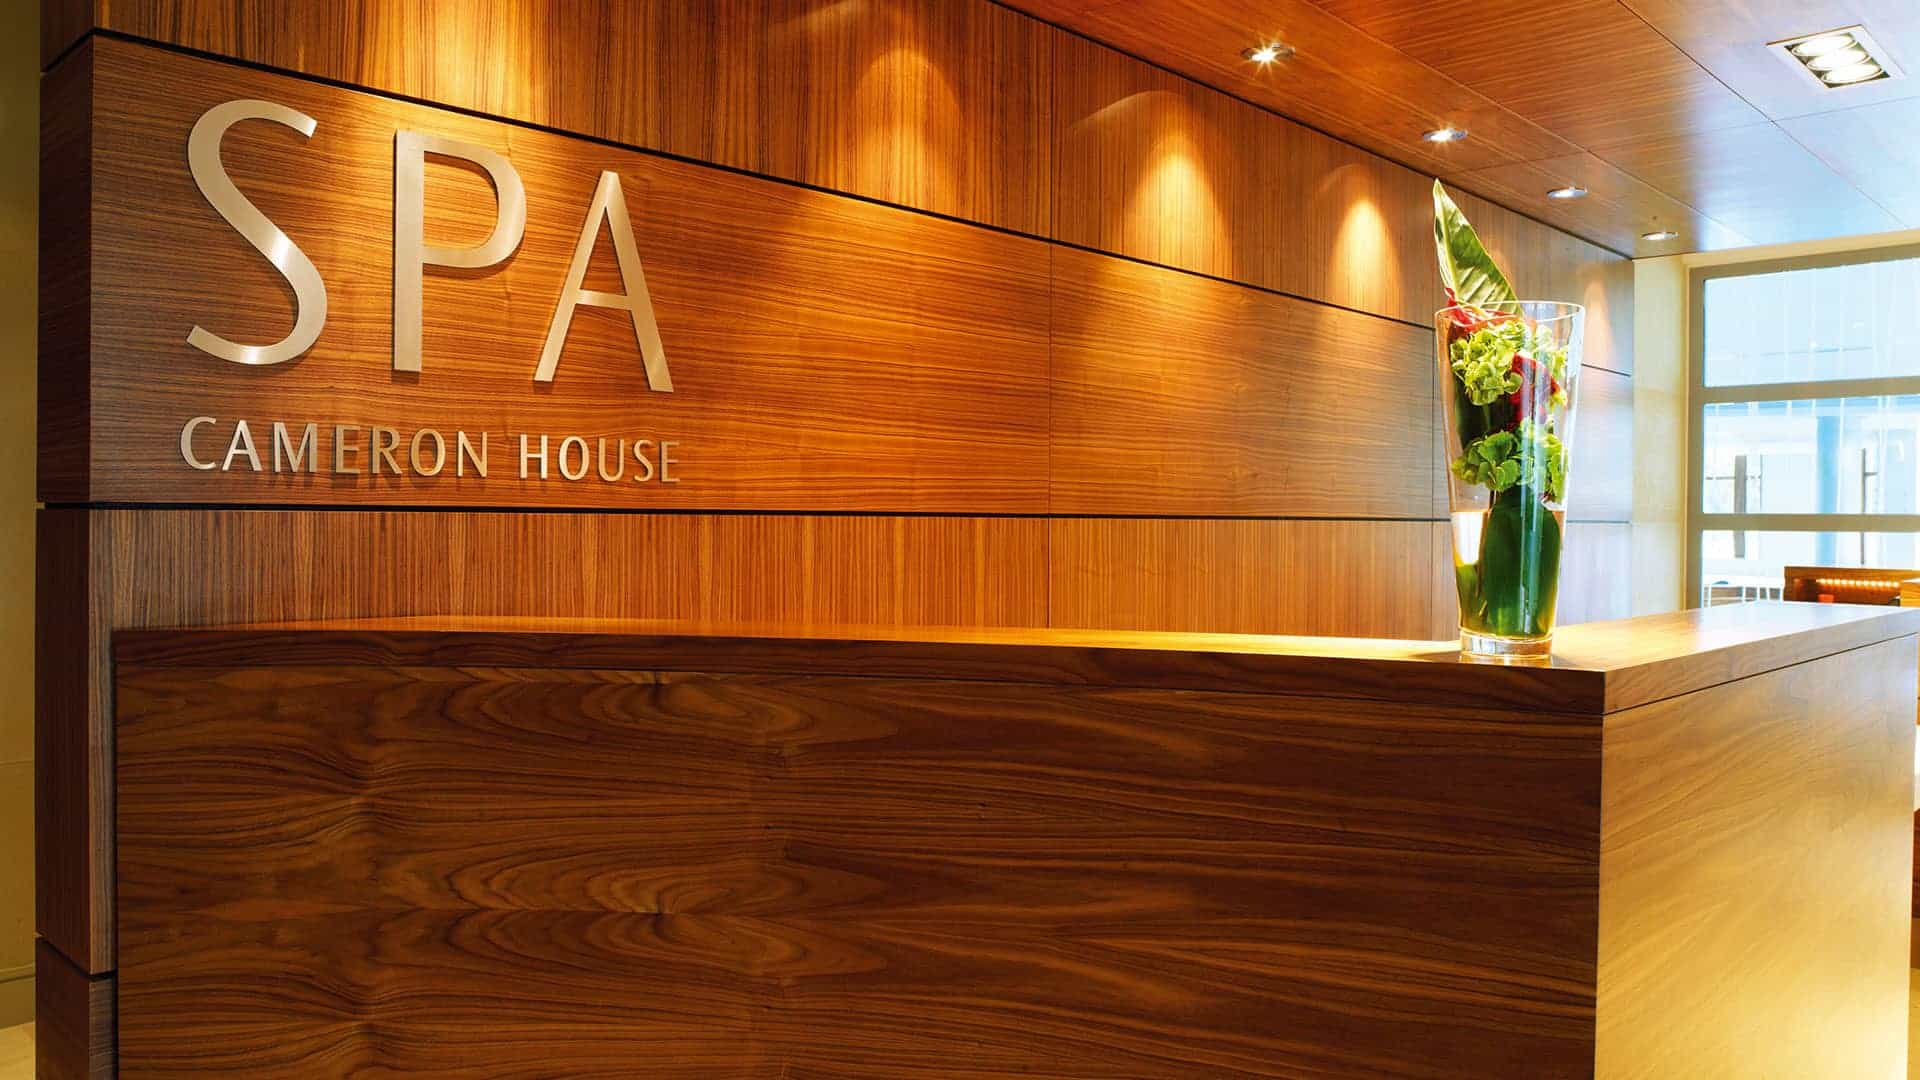 Internal Hospitality Hotel Signage for Spa Area